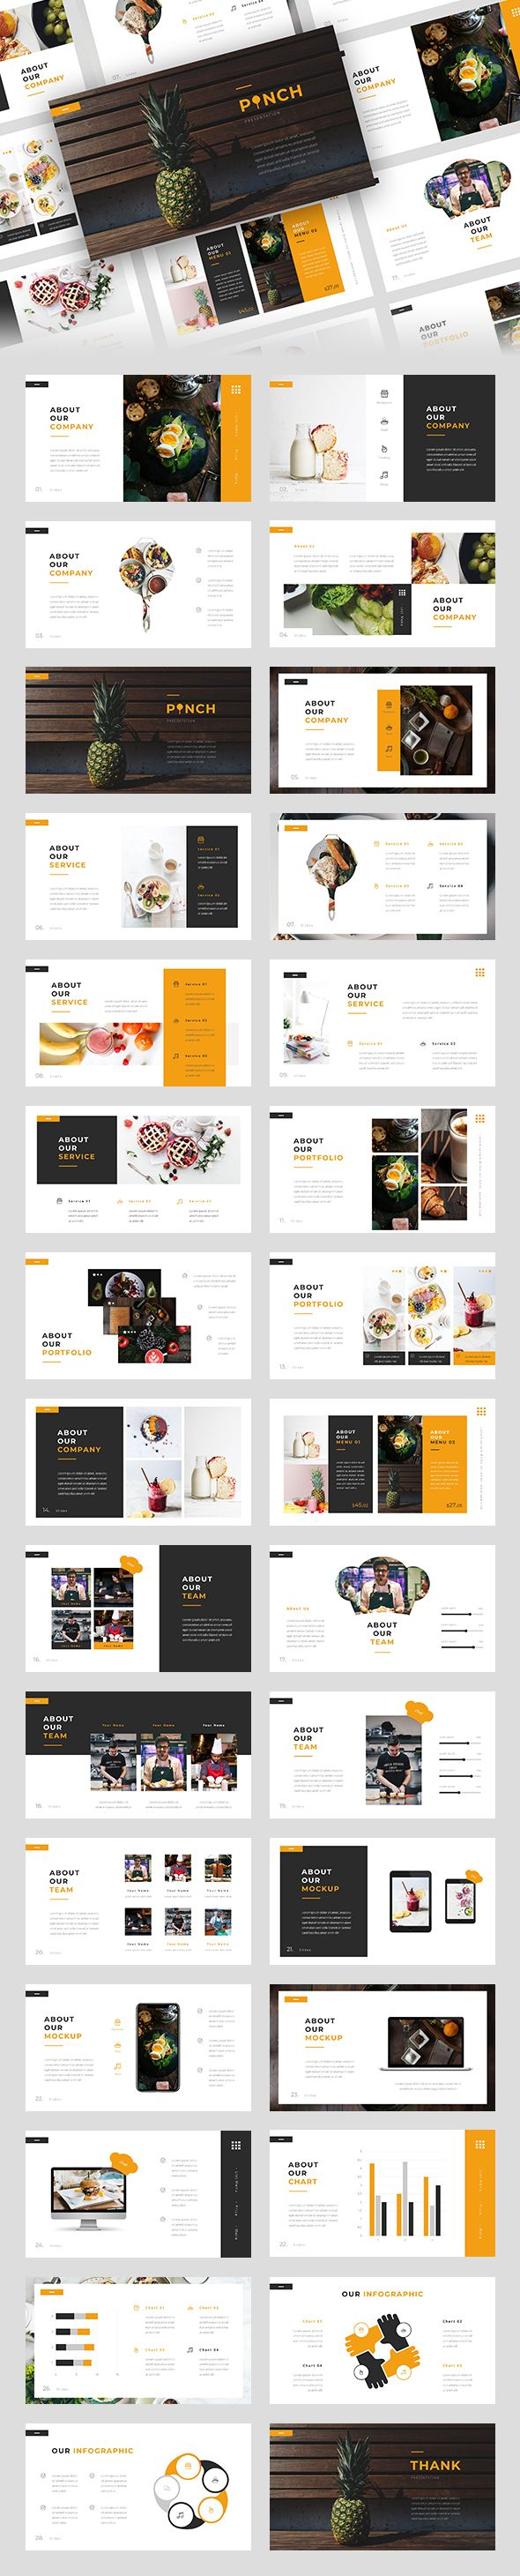 Pinch Food Google Slides Template Powerpoint Presentation Design Presentation Design Book Design Layout